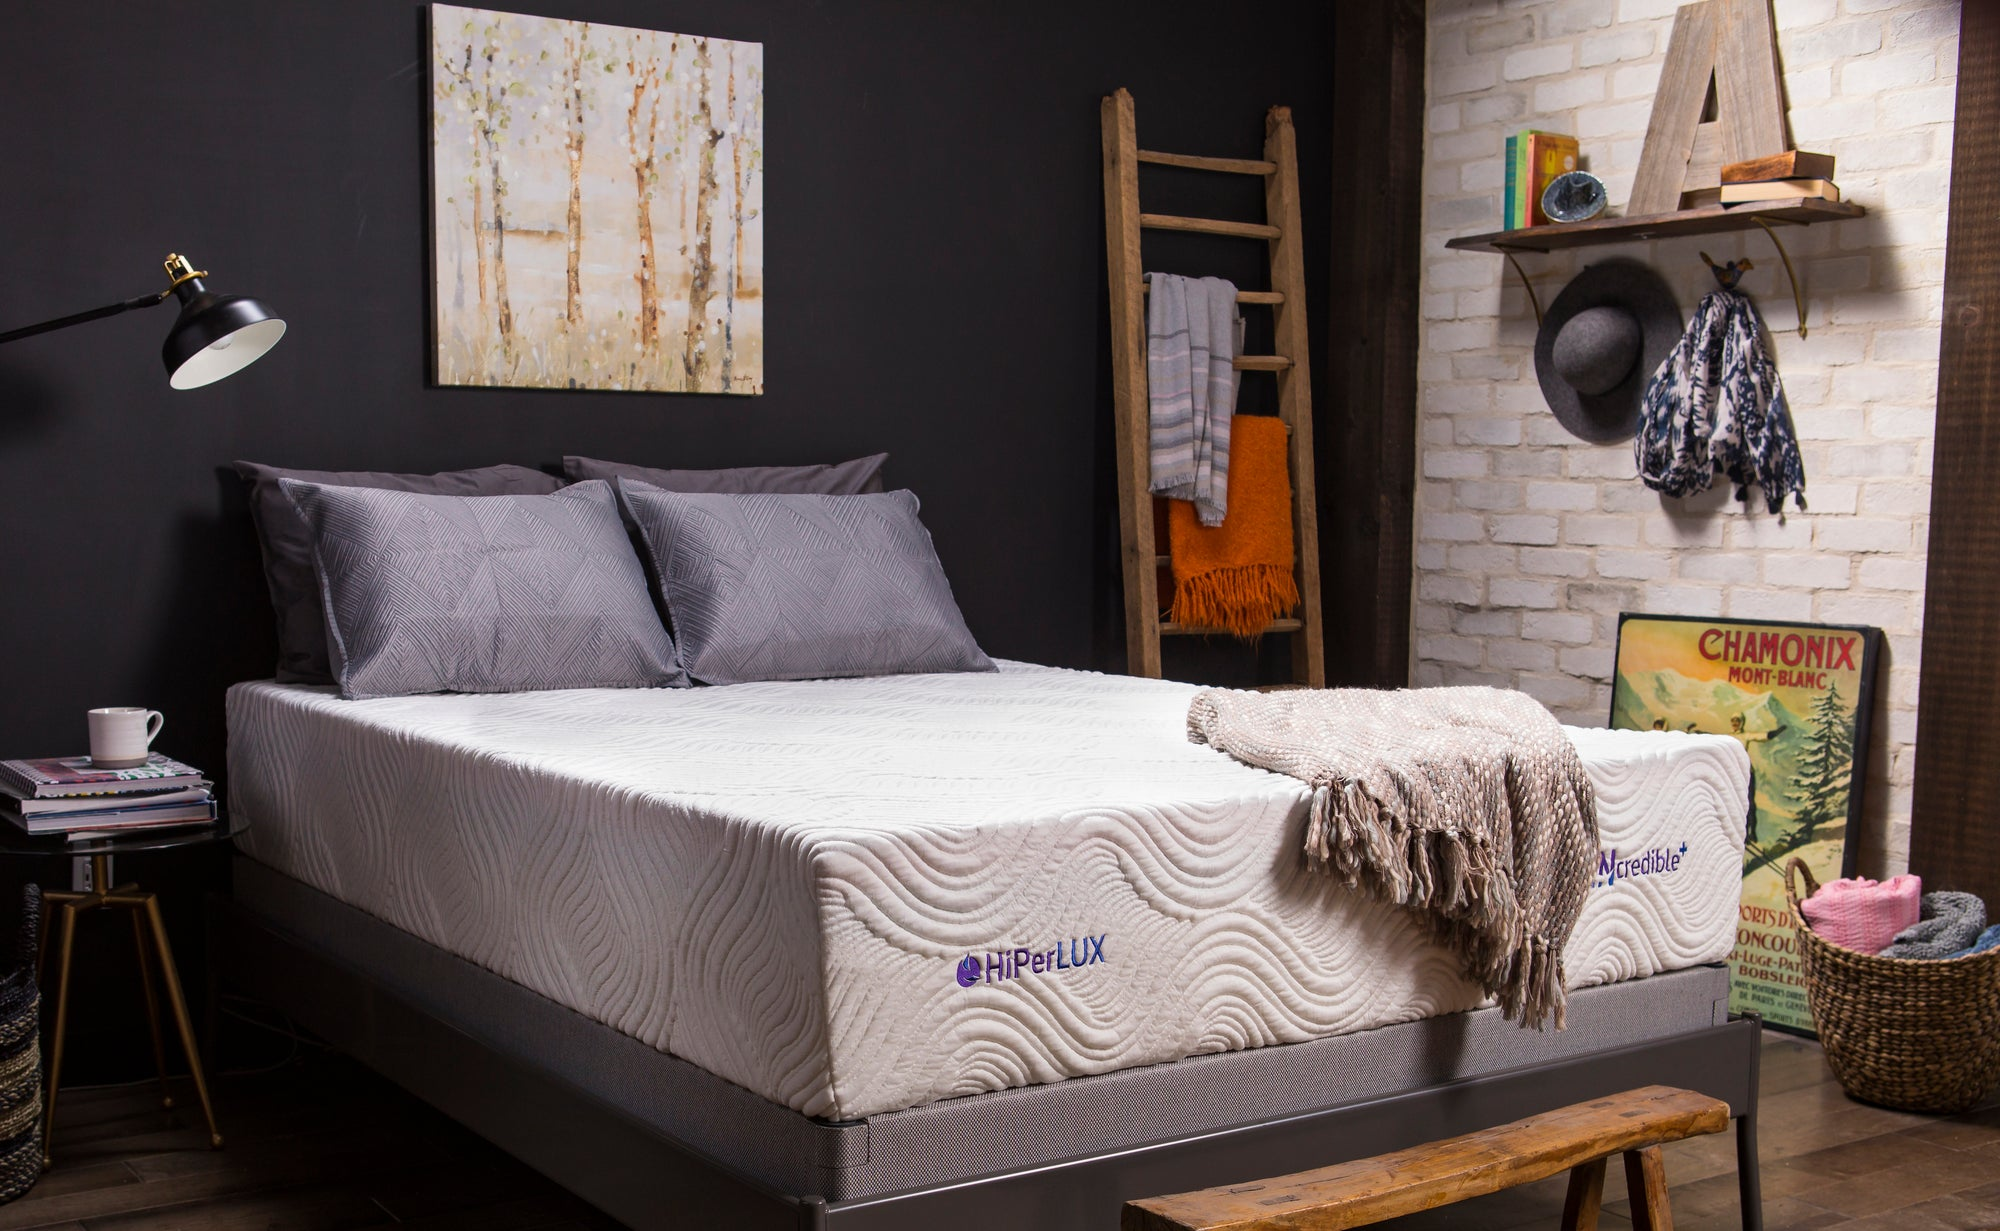 INcredible+ Luxury Firm Mattress Better Sleep Bundle